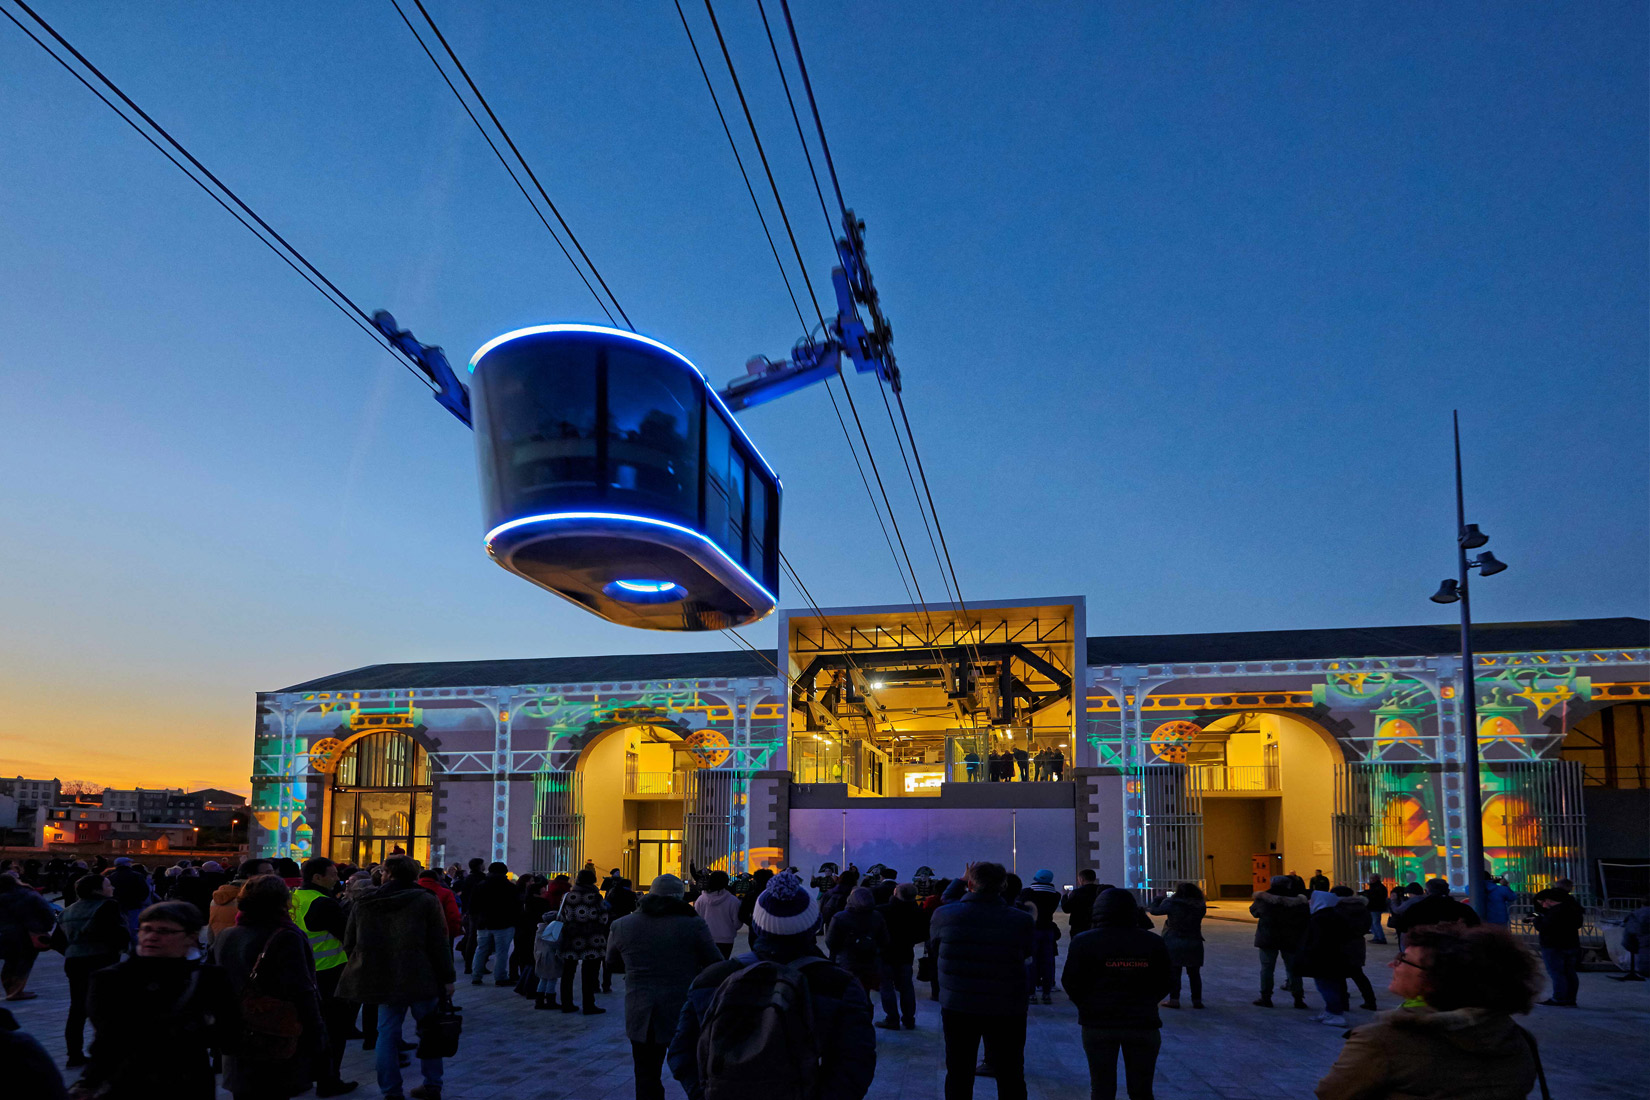 Die Seilbahn und die Capucins Workshops © Tourist Office of Brest Metropole